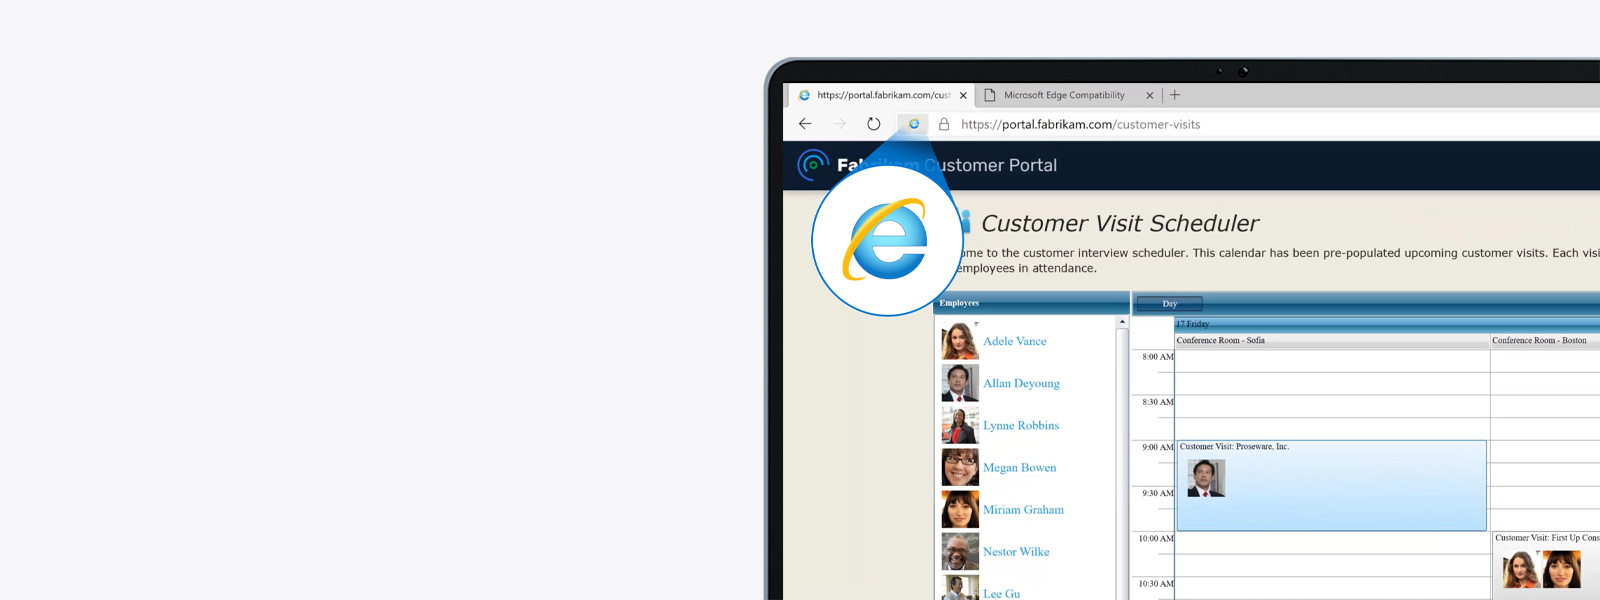 A Microsoft Edge browser with a site opened in Internet Explorer mode.